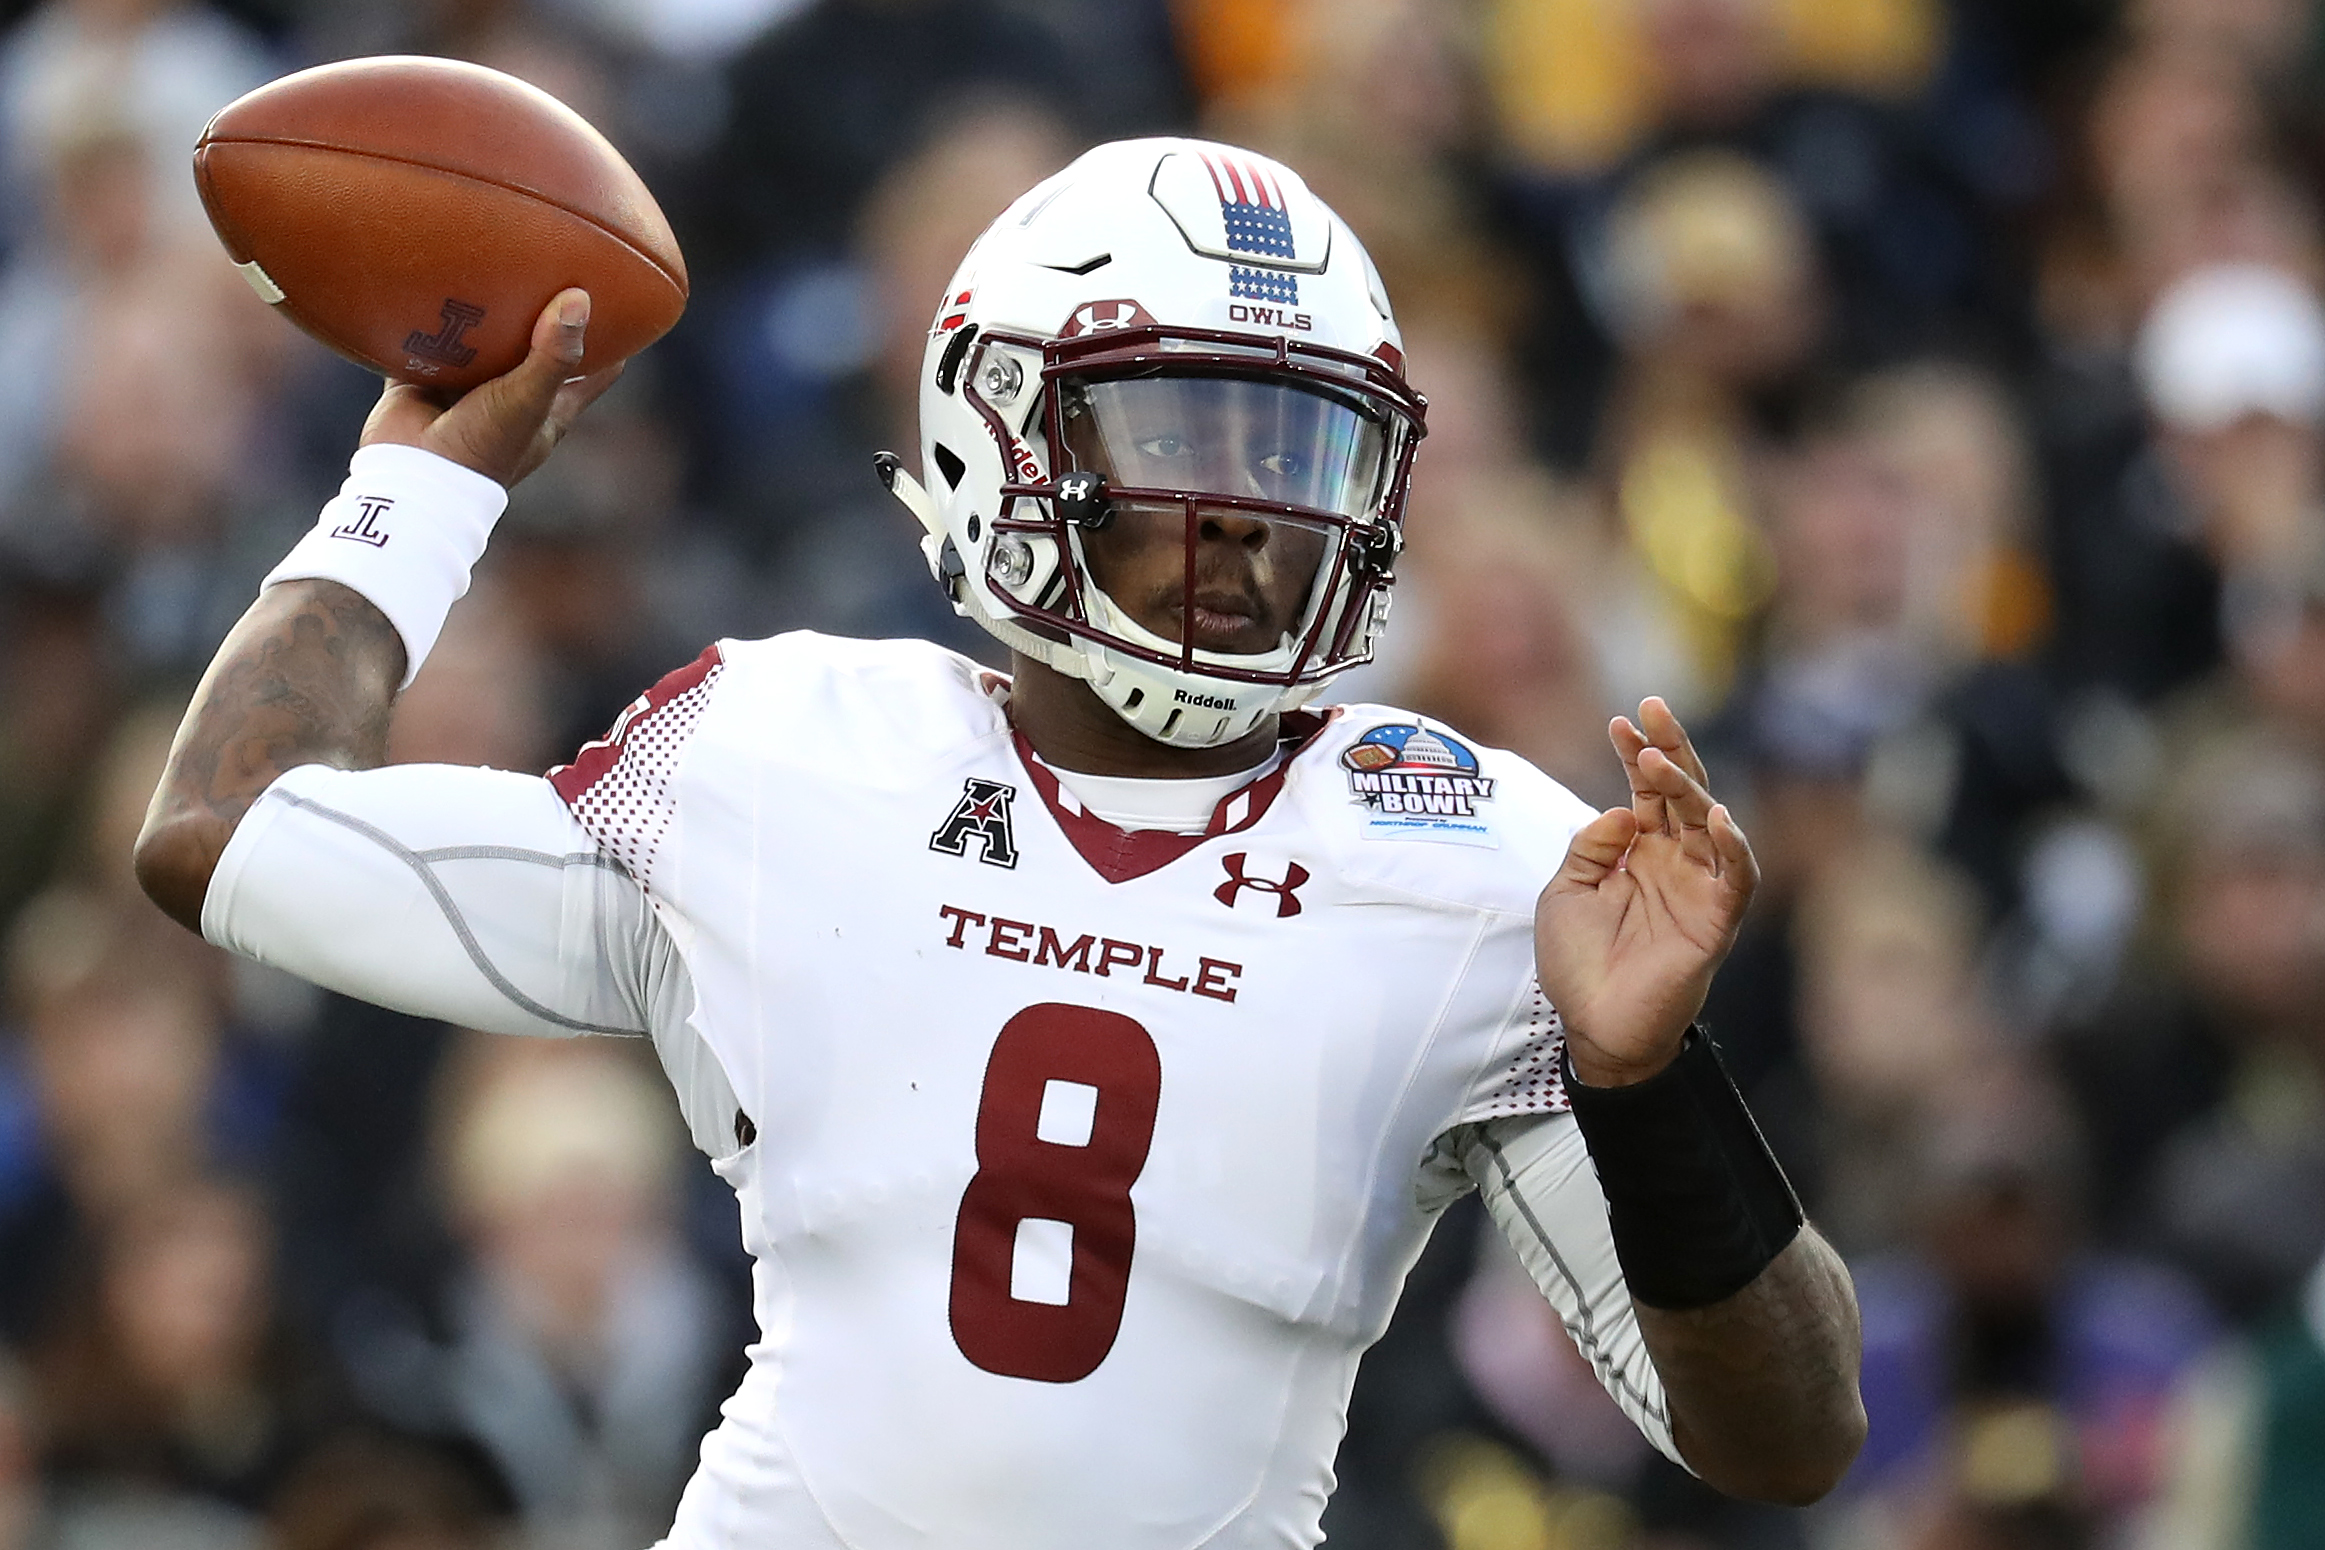 Temple quarterback Phillip Walker set several program records during his time with the Owls. (Getty Images)